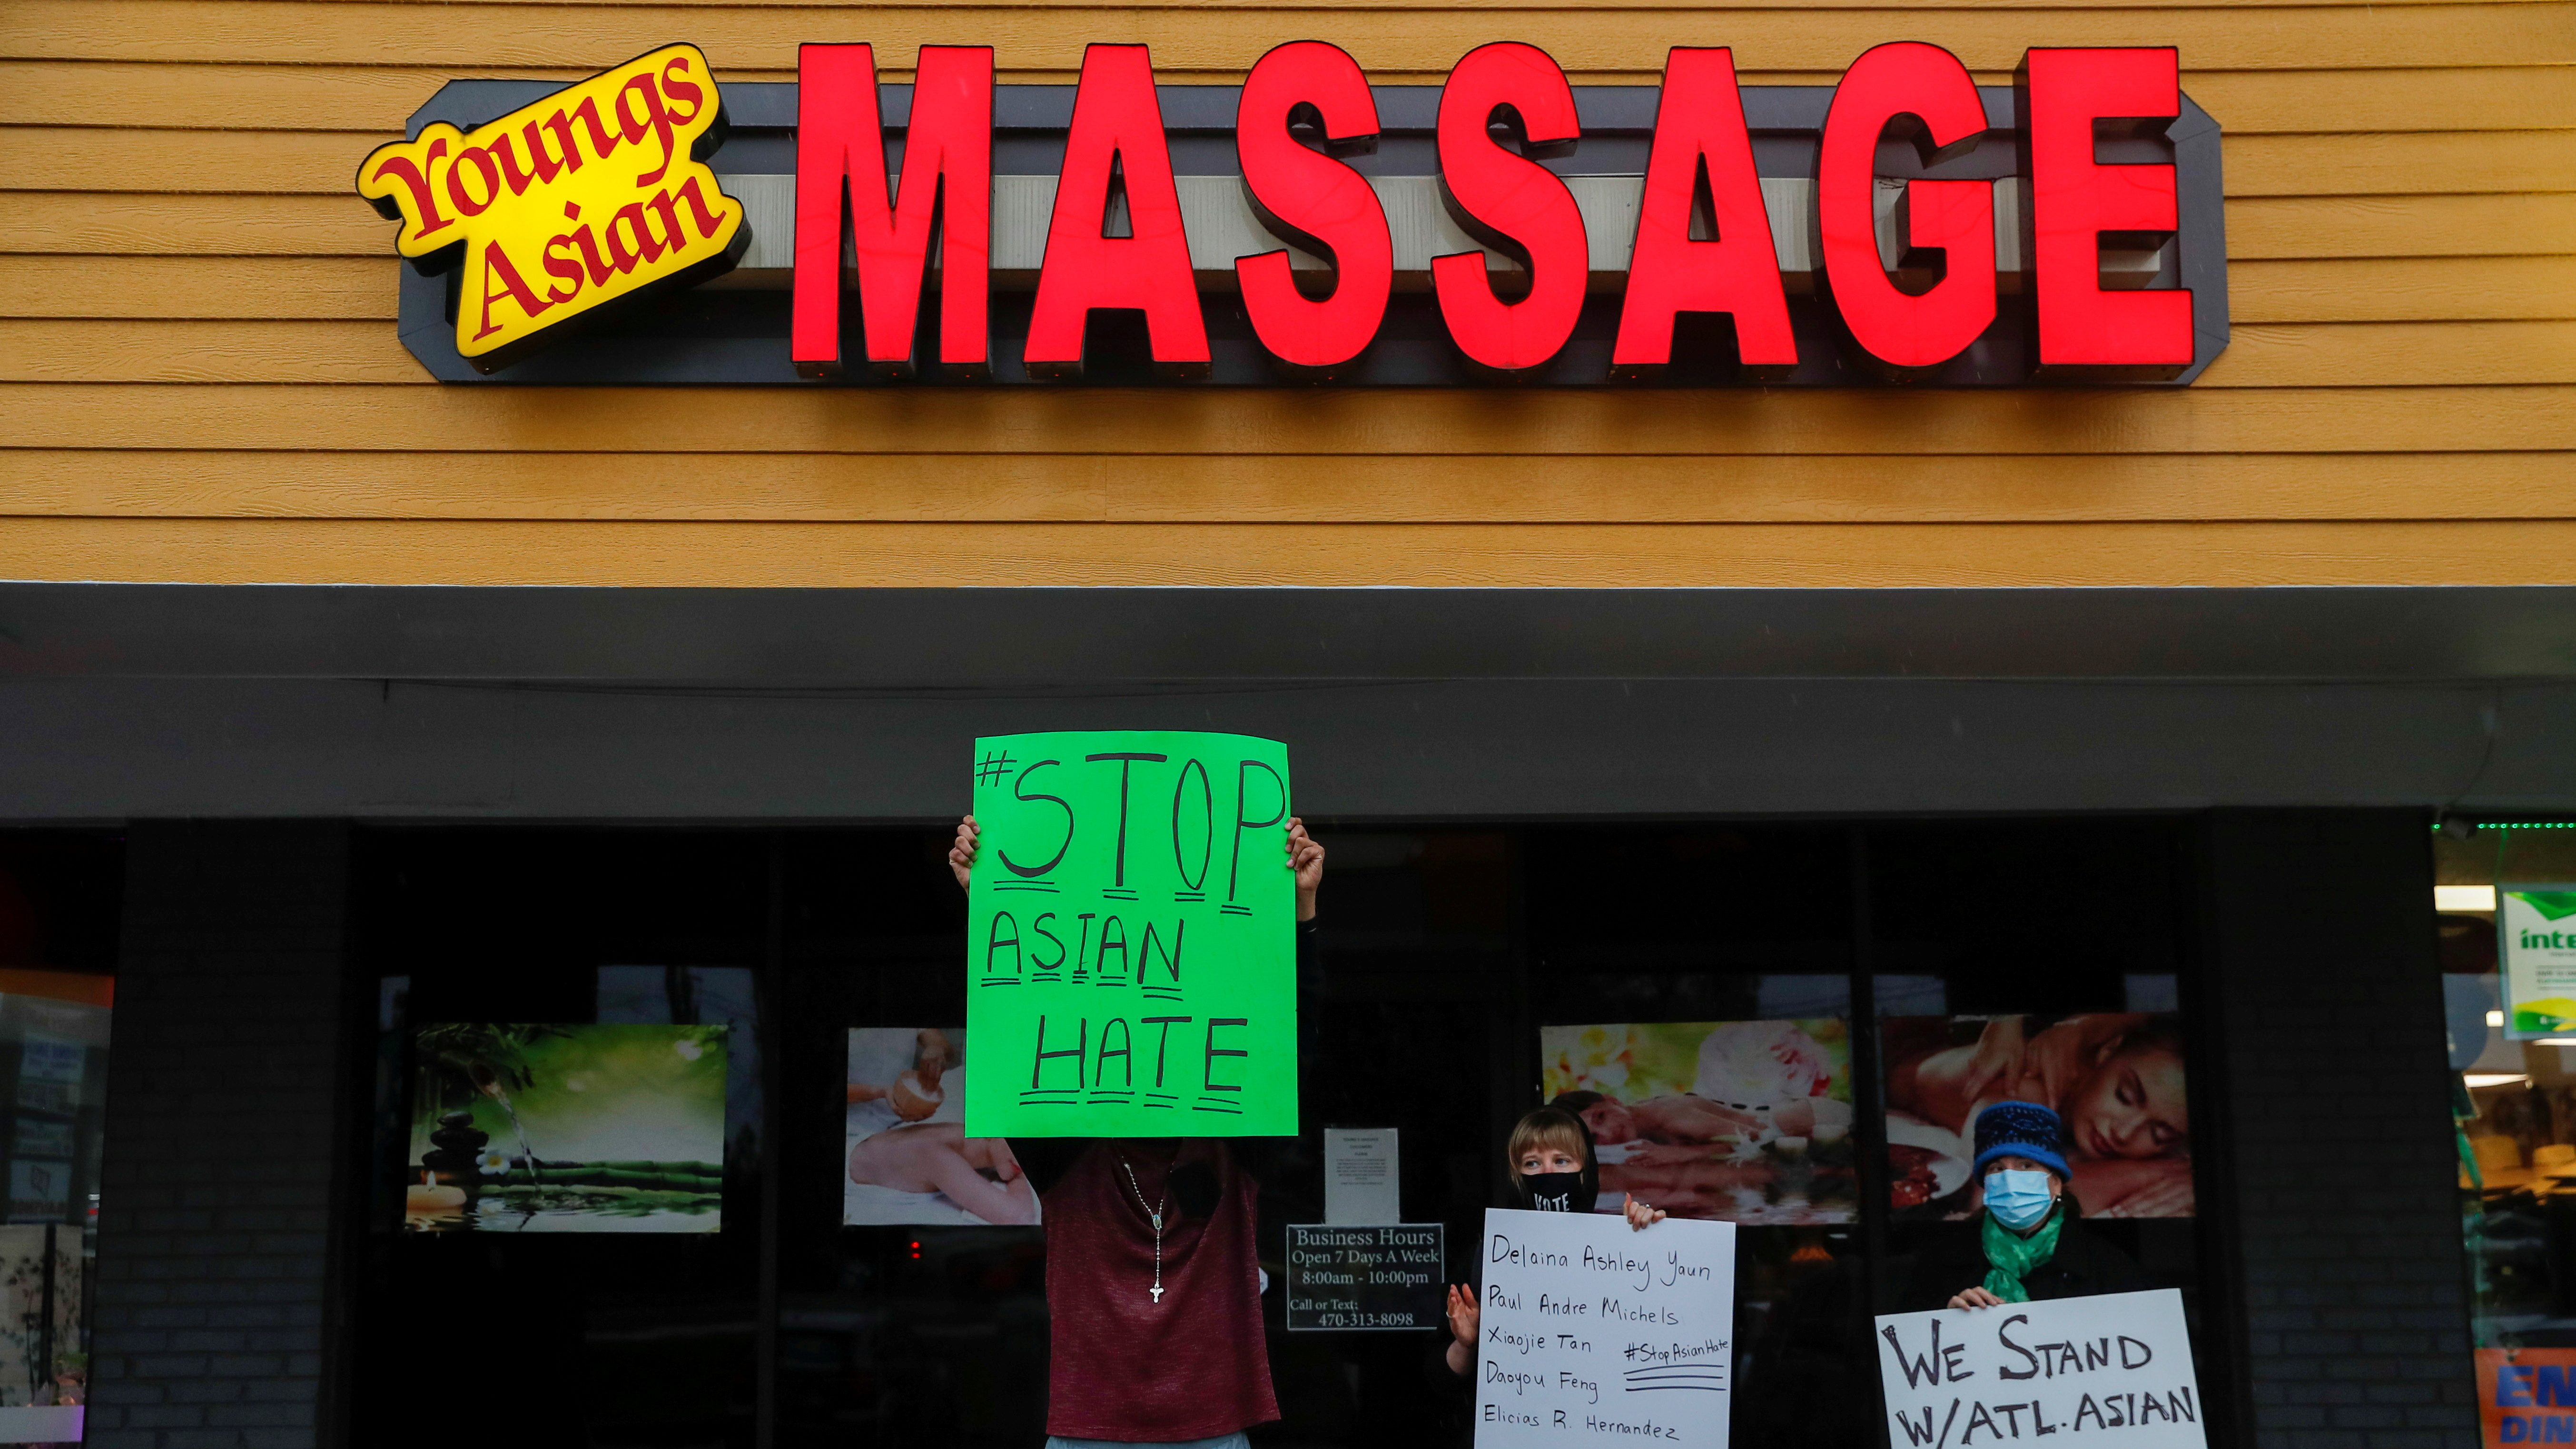 """A man holds a neon-green sign that says """"Stop the hate"""" in all-caps letters while wearing a red shirt, a gold chain, and blue pants in front of Youngs Asian Massage in Actworth, Georgia, after the location was one of three spas where a suspect shot and killed eight people. The word """"massage"""" is in large red letters and two other people are holding signs with the names of the victims and the words """"We stand with ATL Asian community."""""""